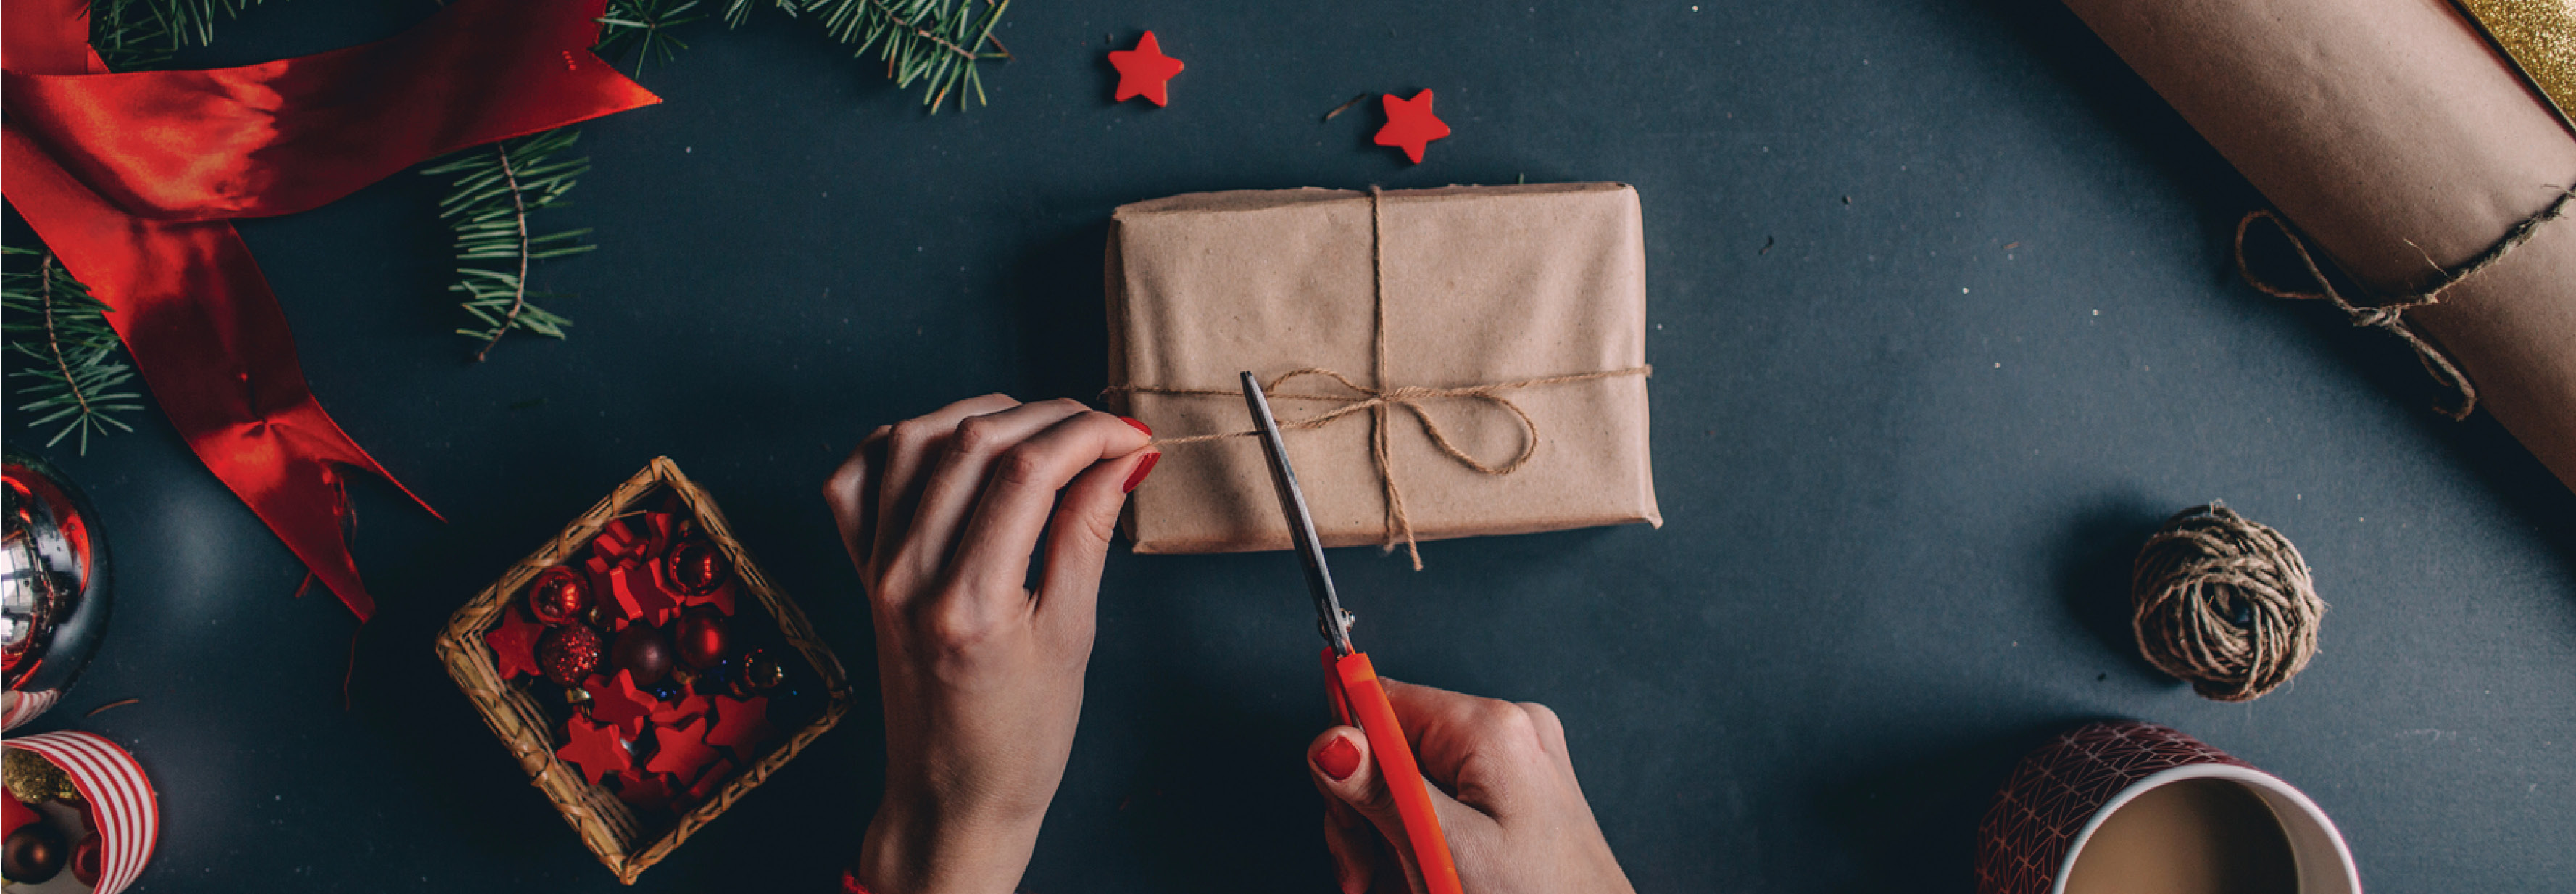 25 easy tips for saving money during the holidays